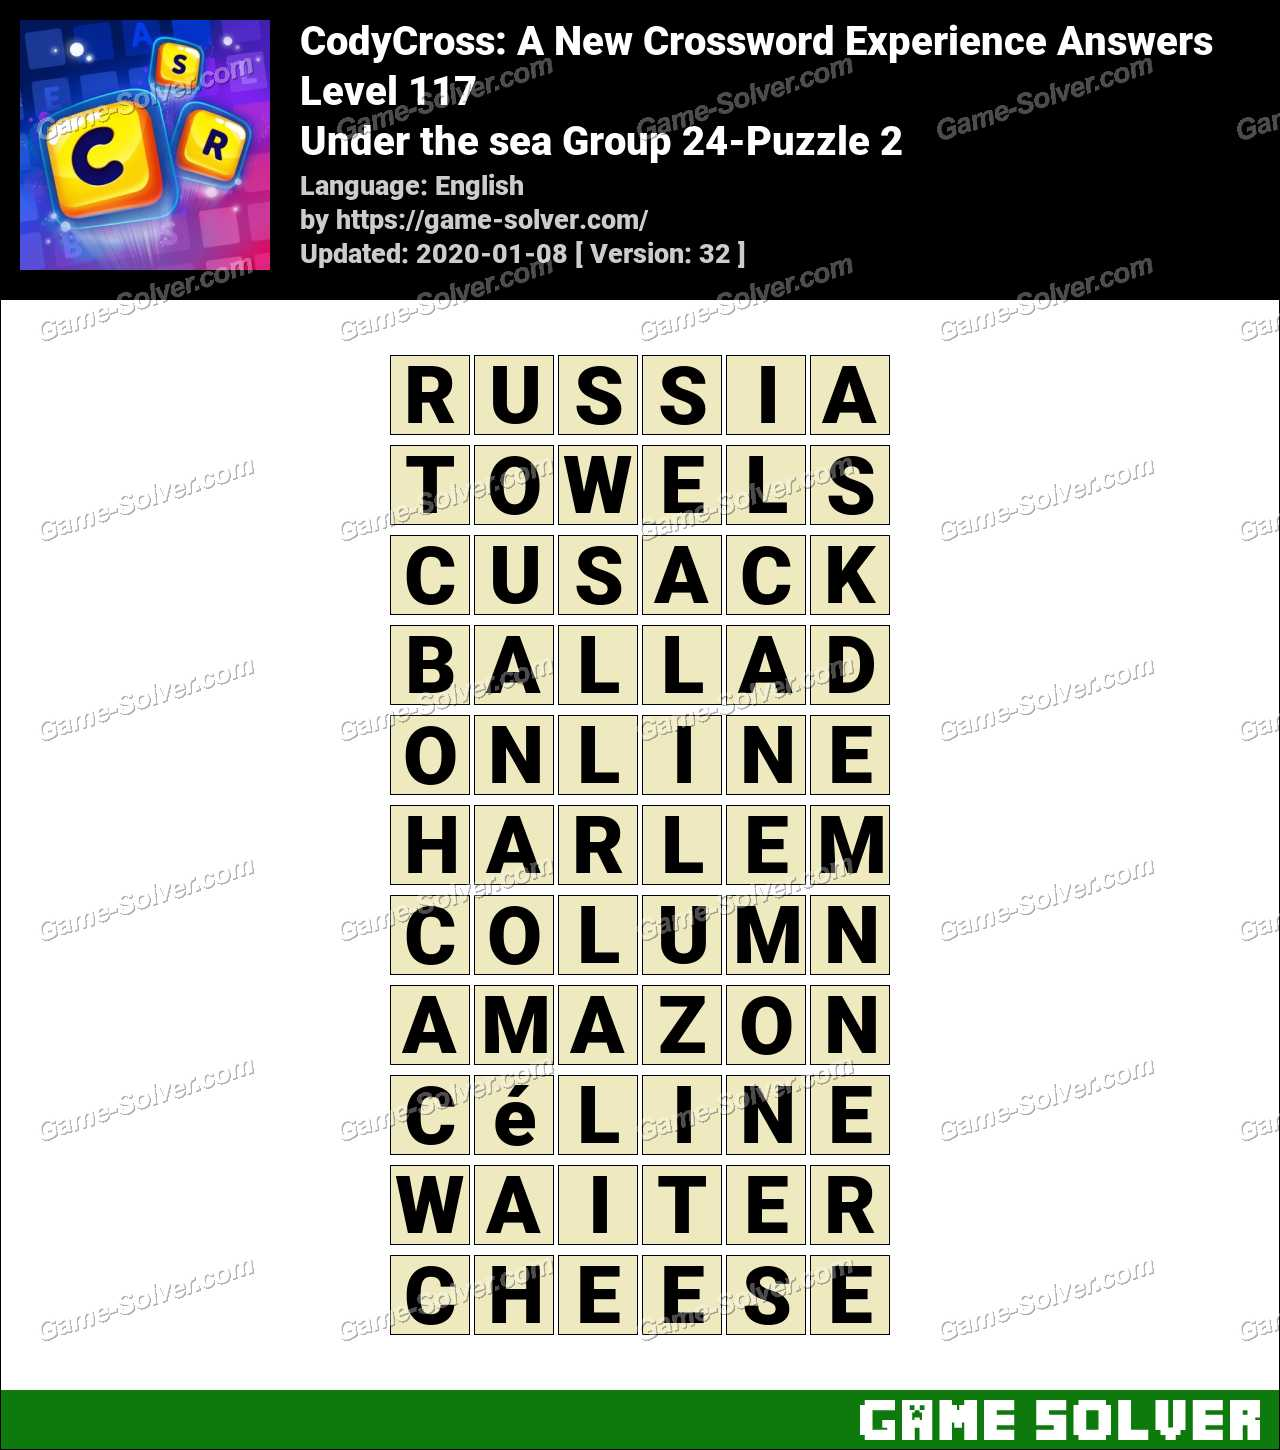 CodyCross Under the sea Group 24-Puzzle 2 Answers